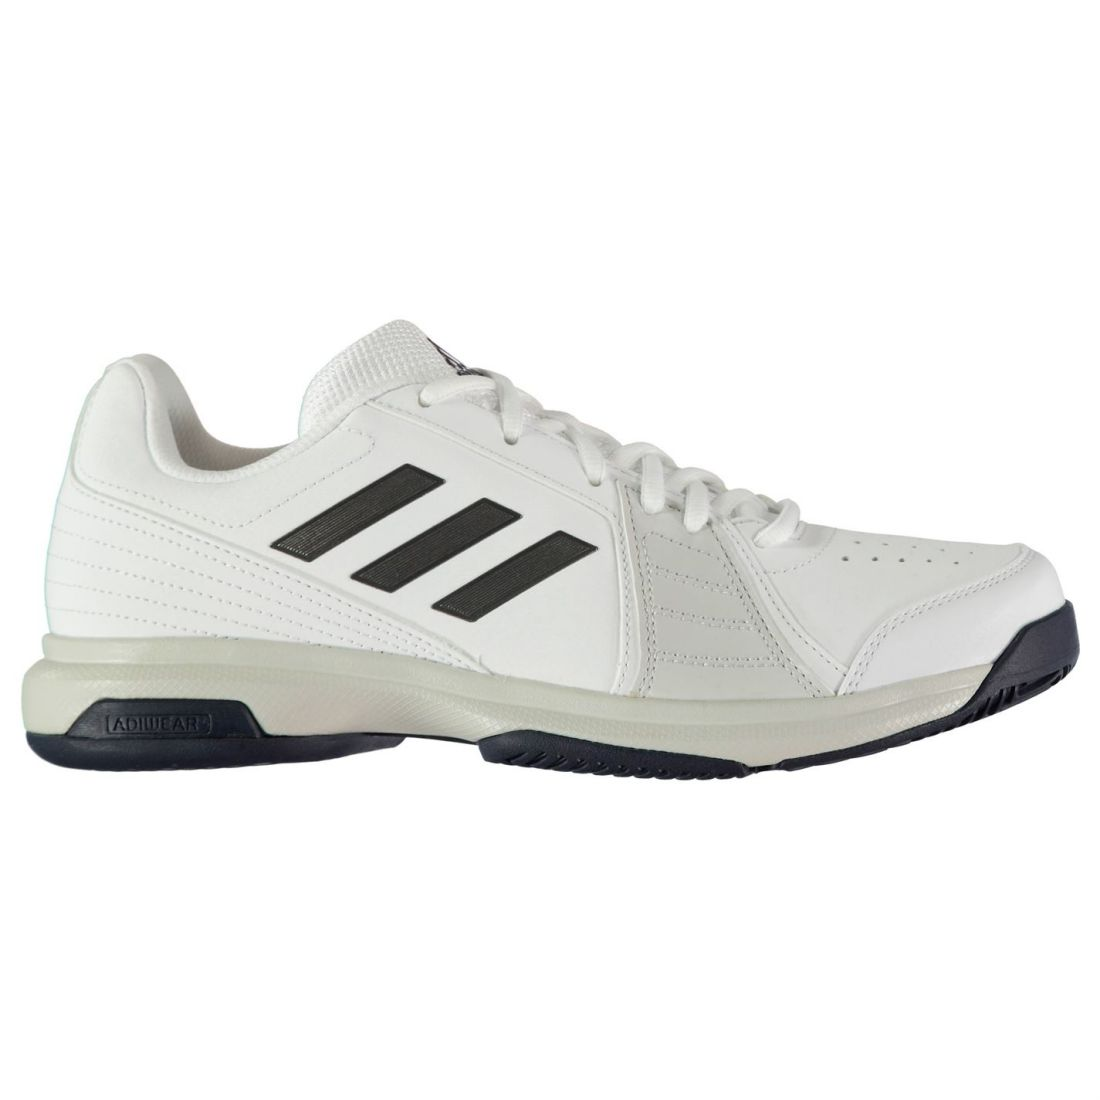 22b977f6a4ece Image is loading adidas-Approach-Tennis-Shoes-Mens-Gents-Laces-Fastened-